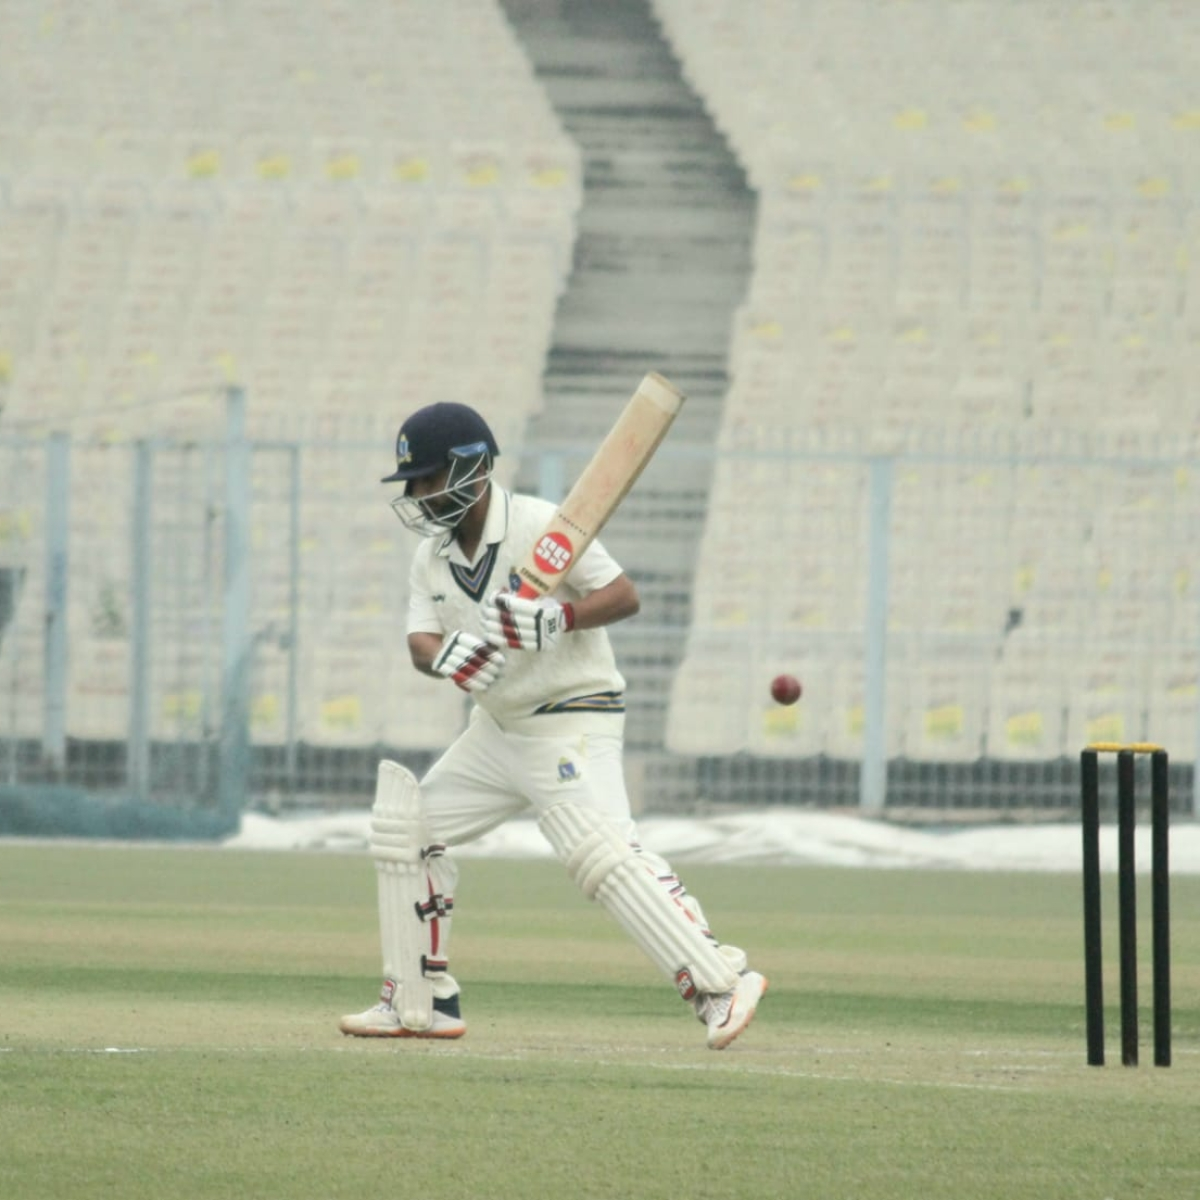 Ranji Trophy: Selector ejected for flouting ACU rules